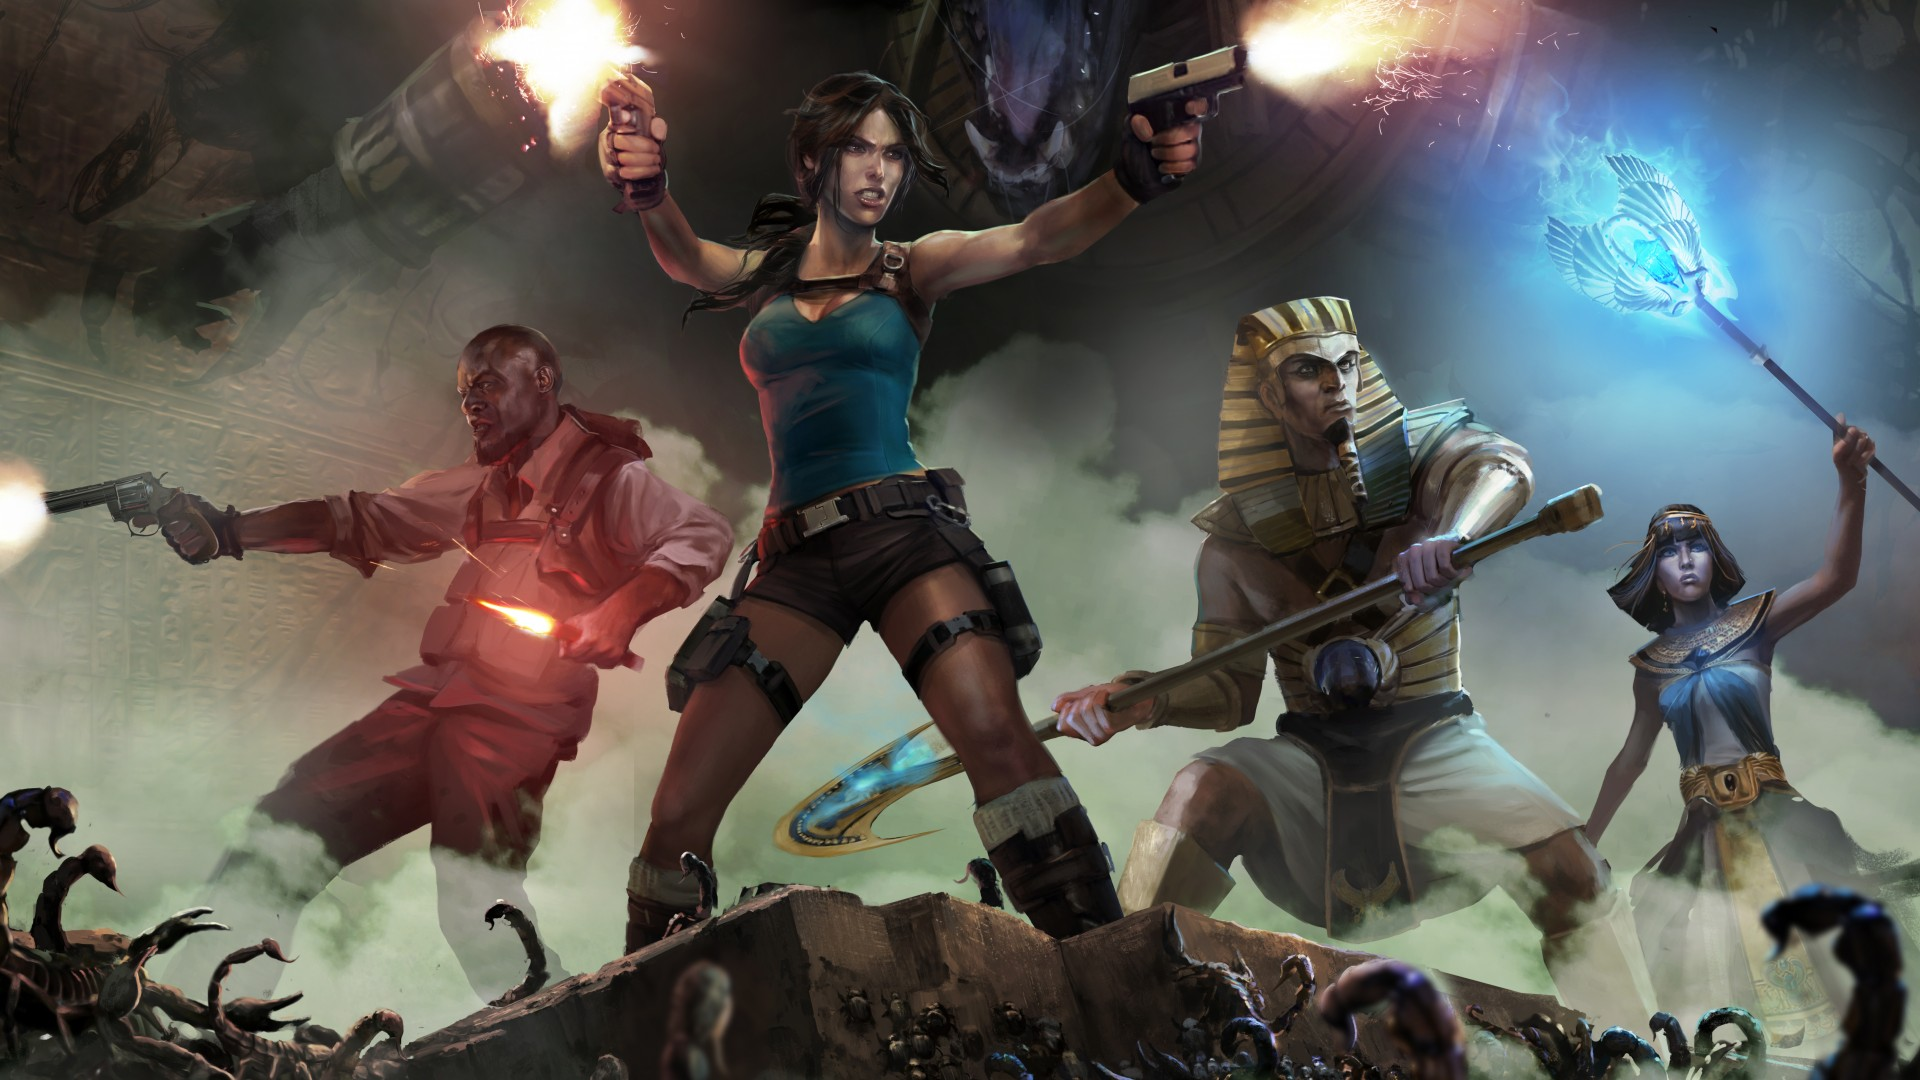 Wallpaper Lara Croft And The Temple Of Osiris Game Kartel Bell